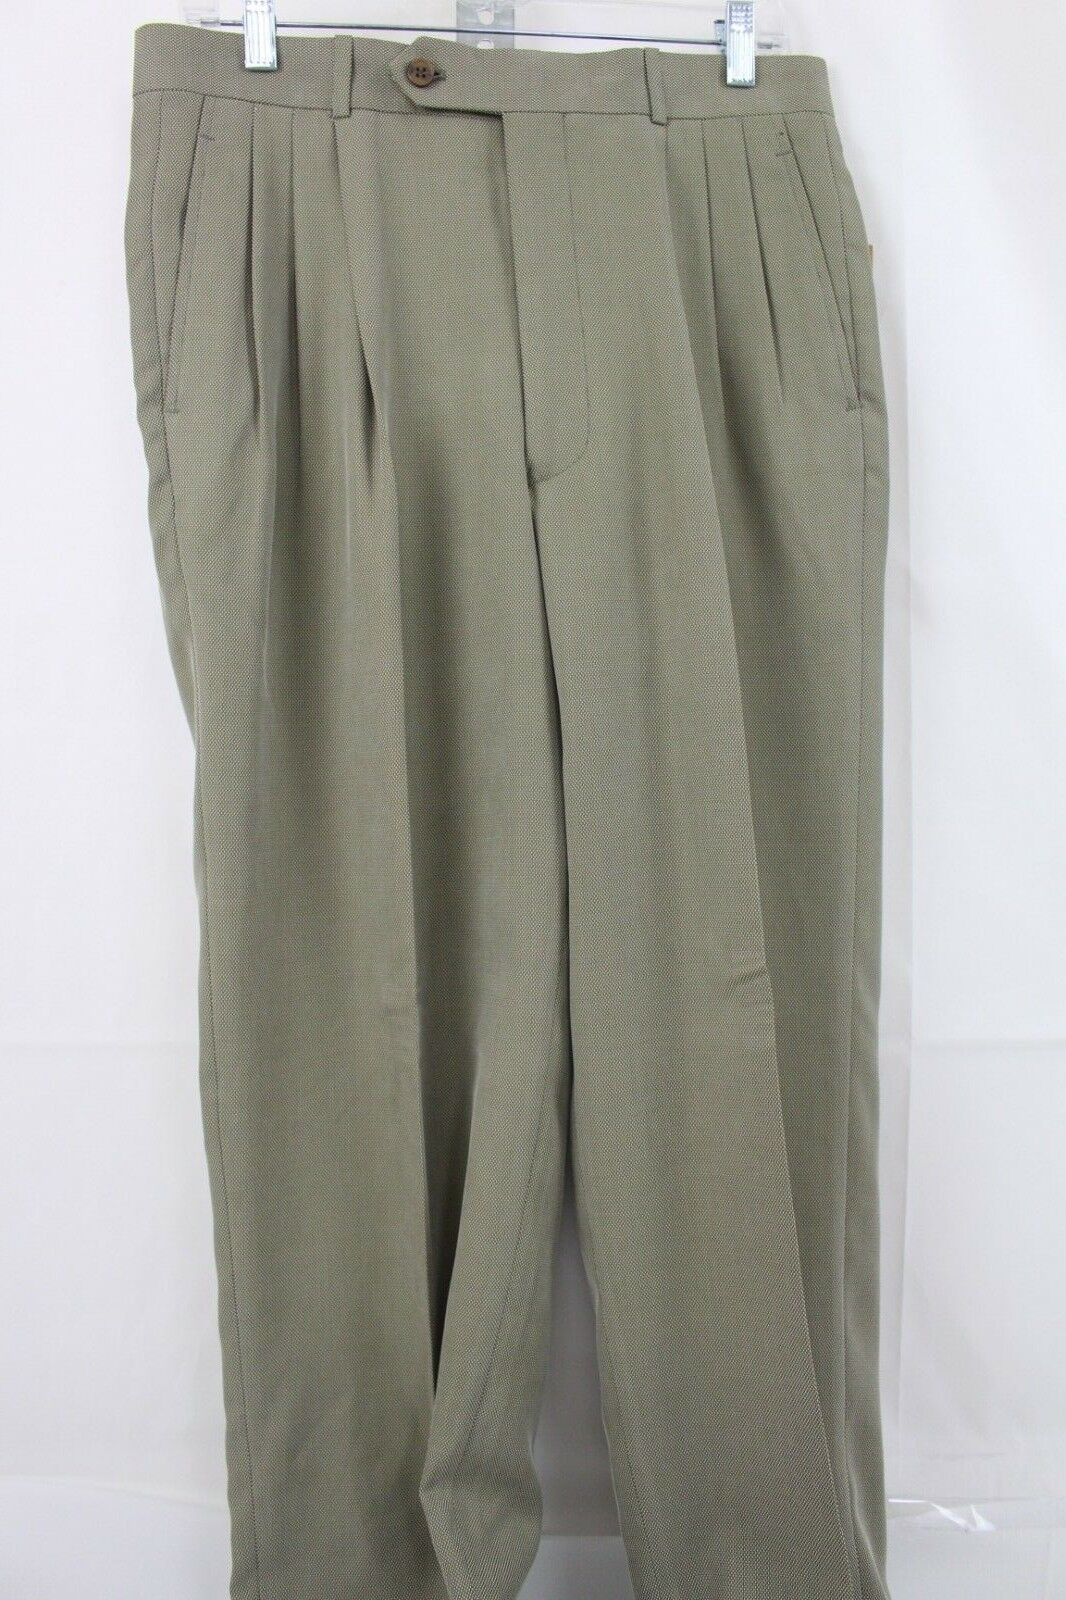 Today's Man Polynosic & Polyester Blend Green & Beige Pleated Dress Pants 32X32L